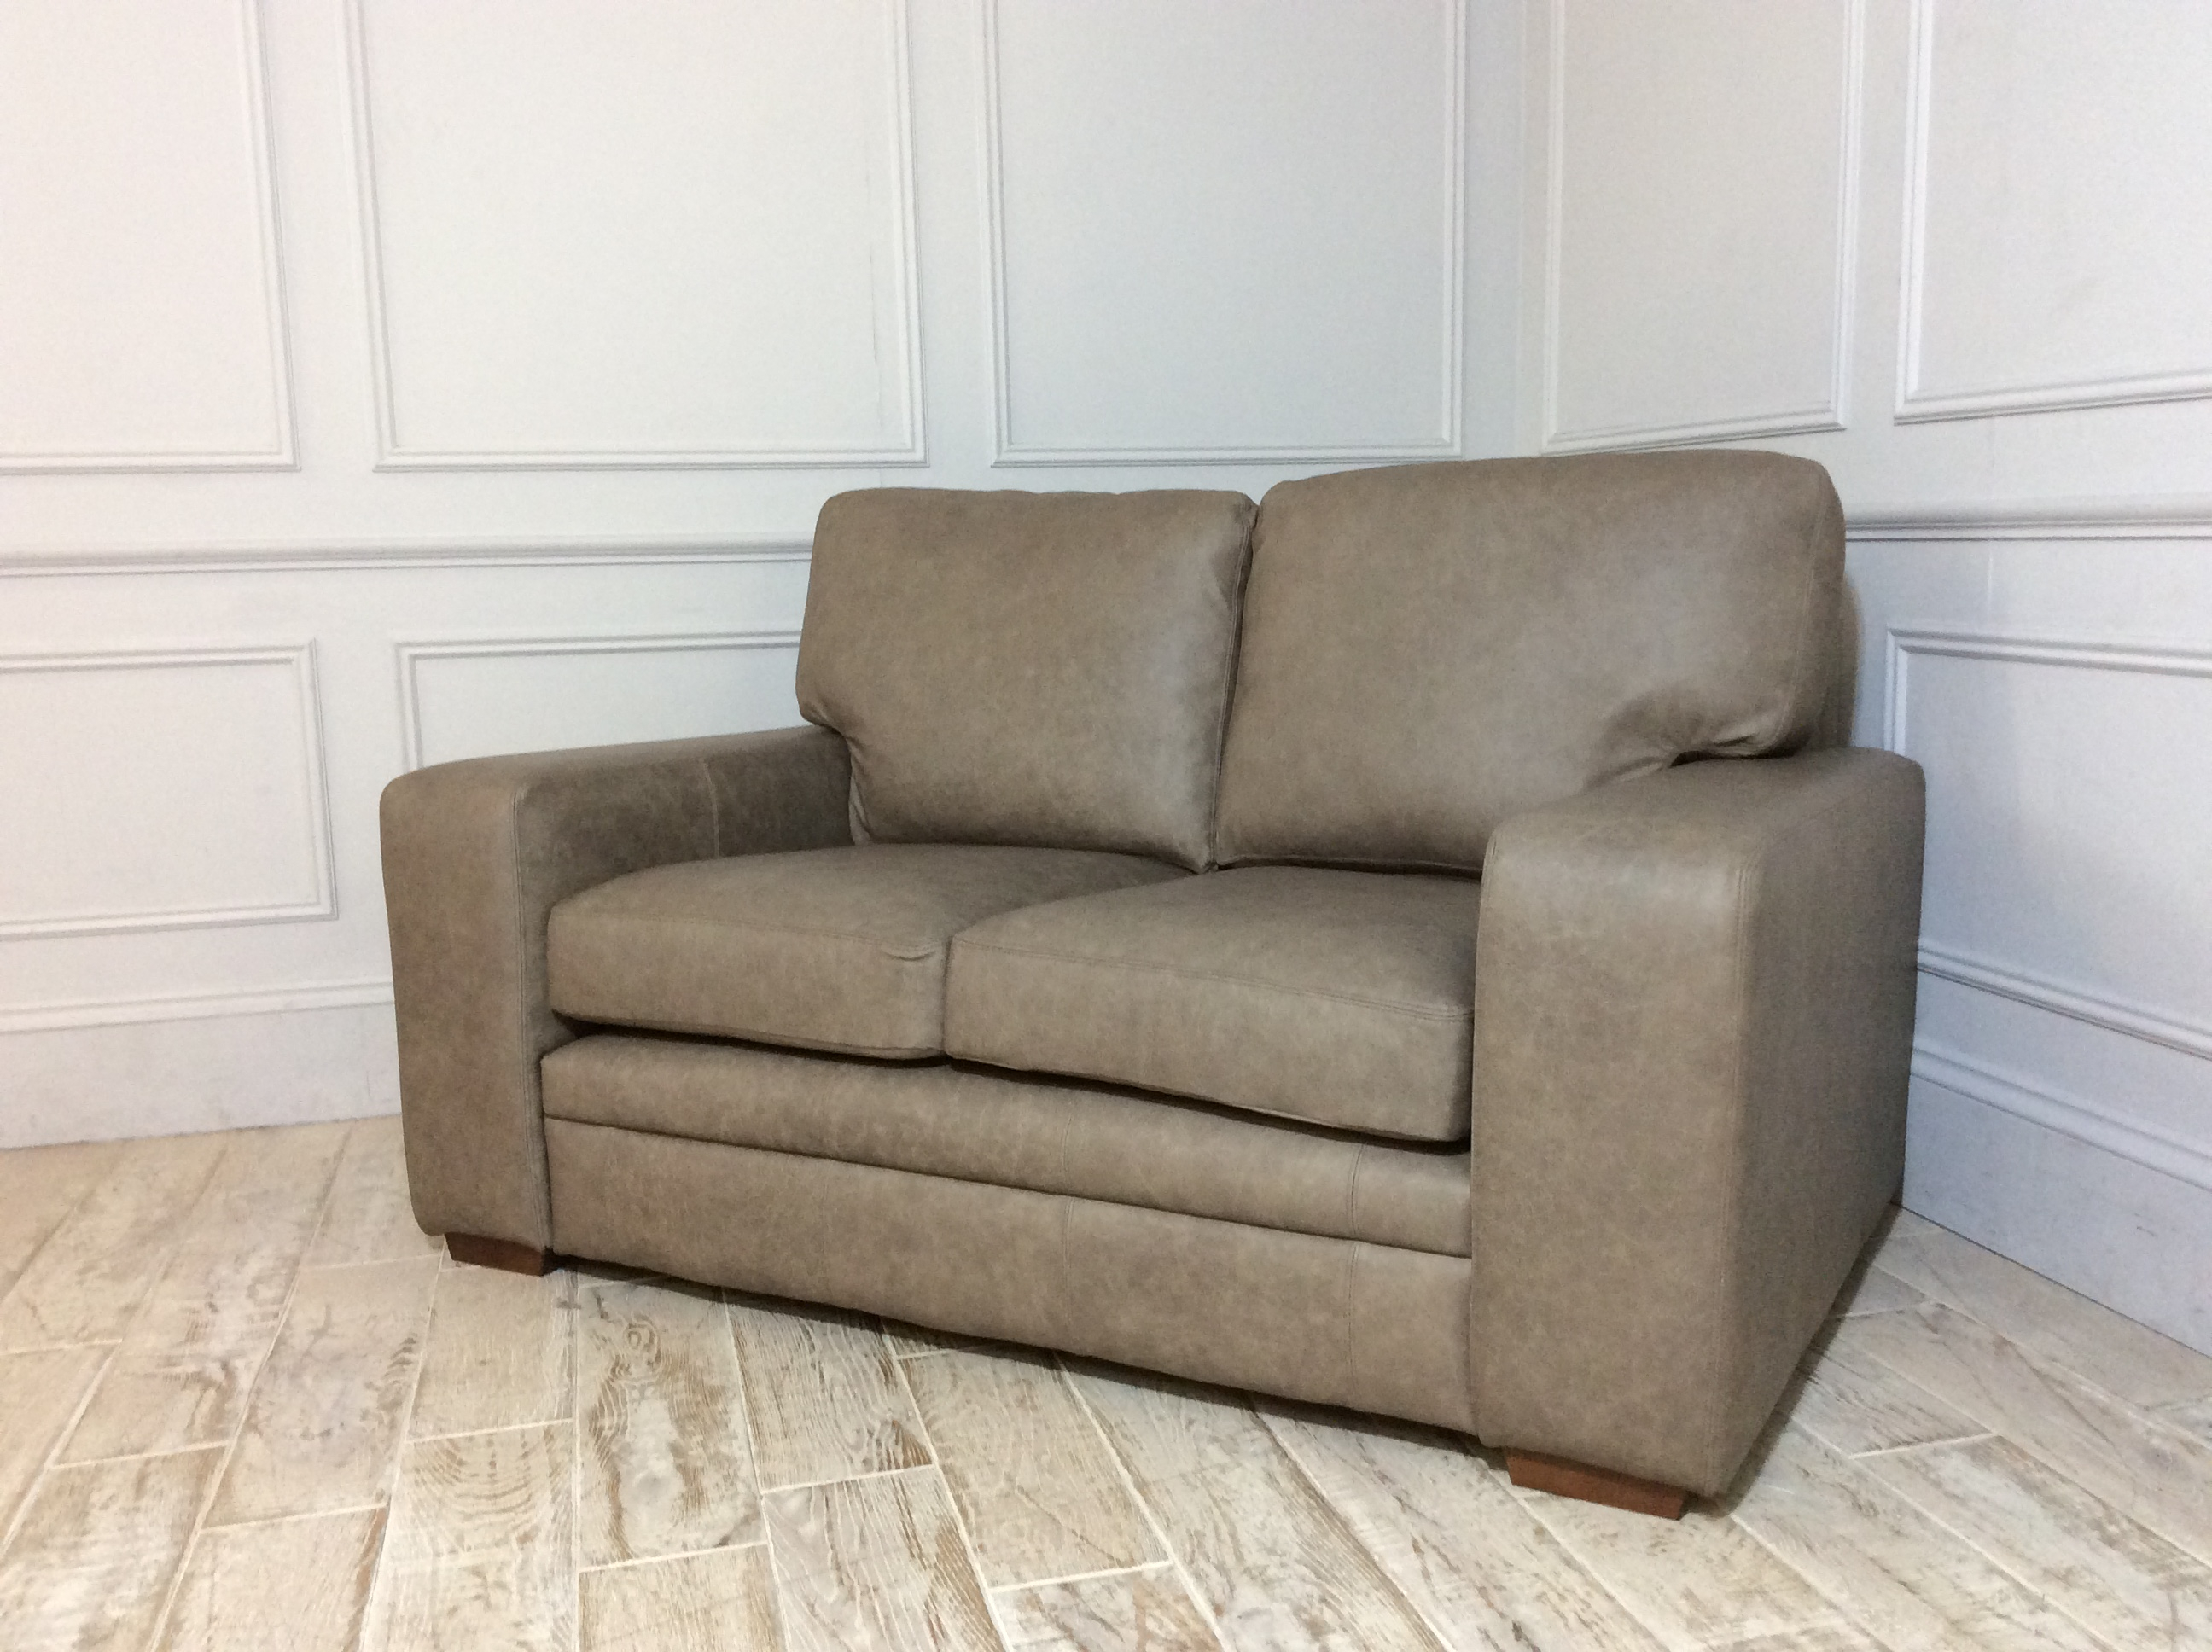 Sloane 2 Seater Leather Sofa in Gravel